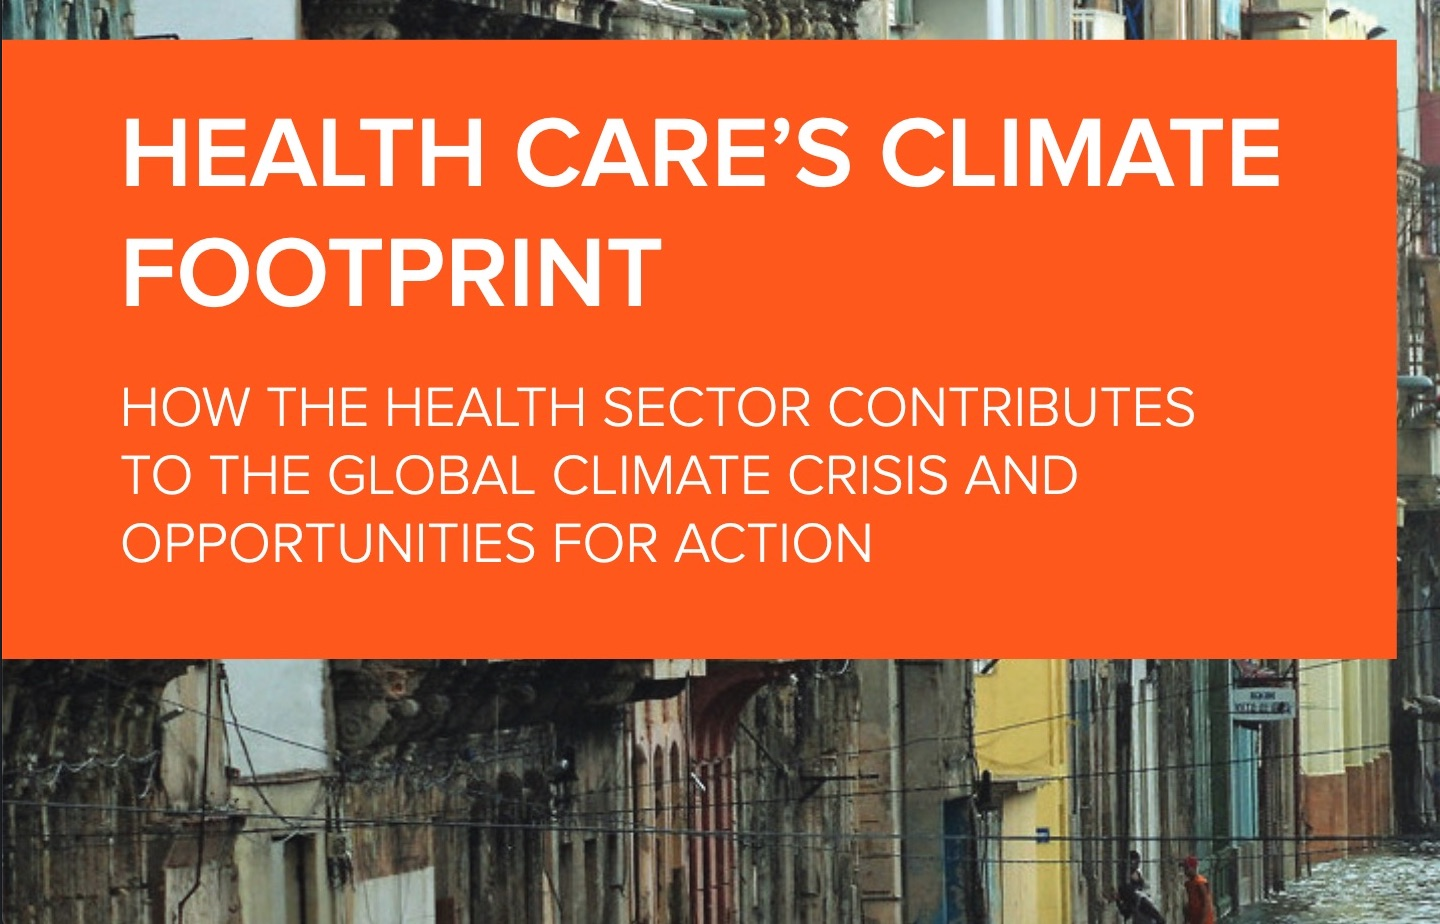 #CoveringClimateNow - healthcare sector urged to step up